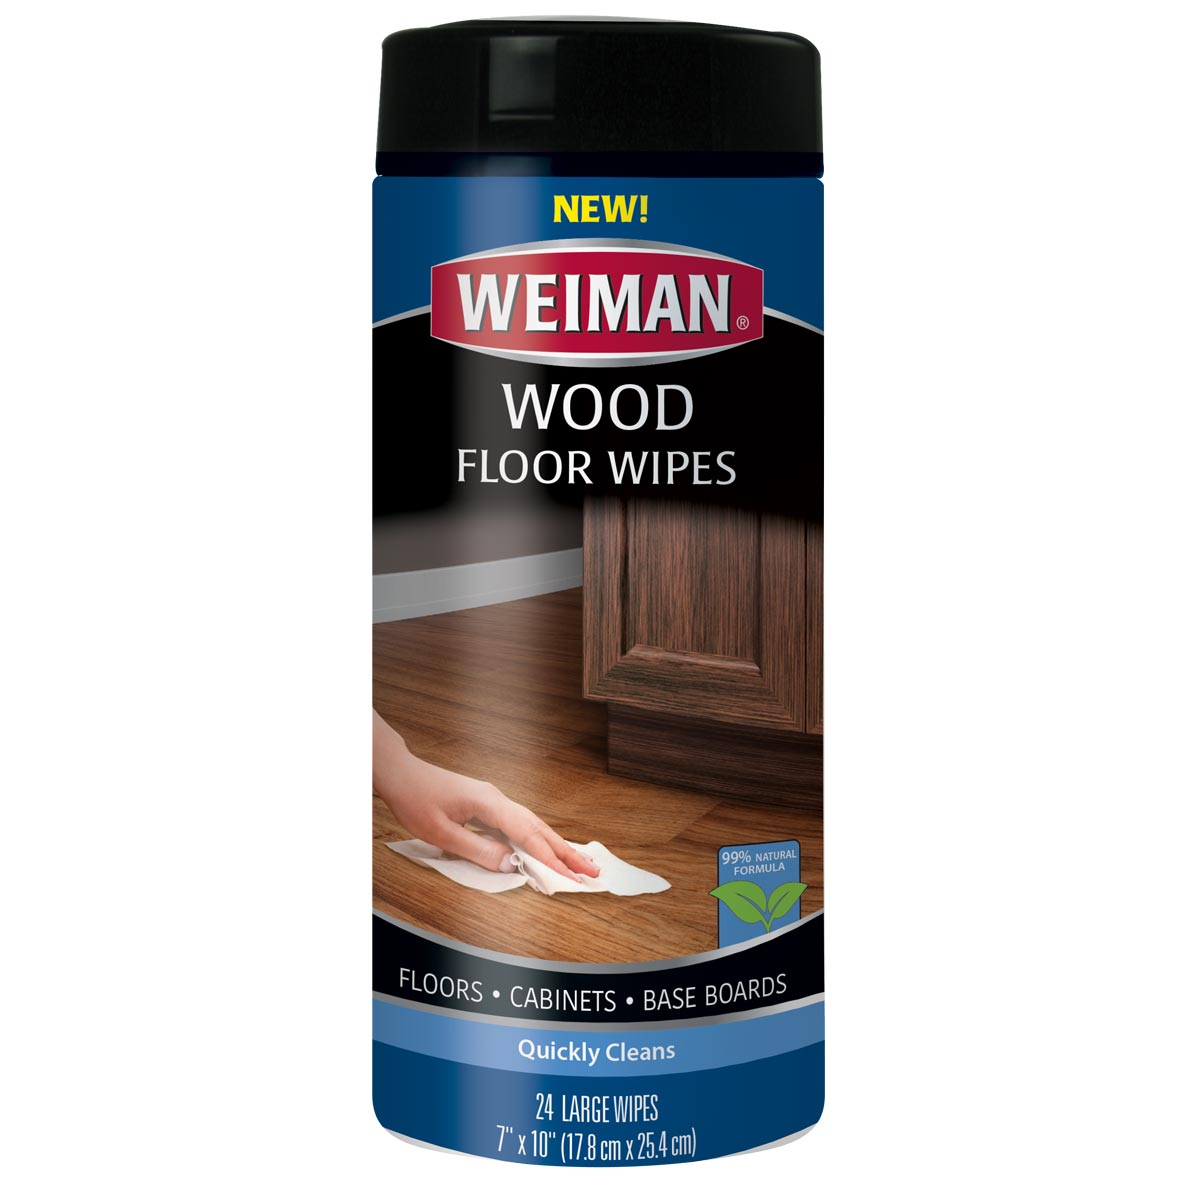 Baseboard cleaning wipes